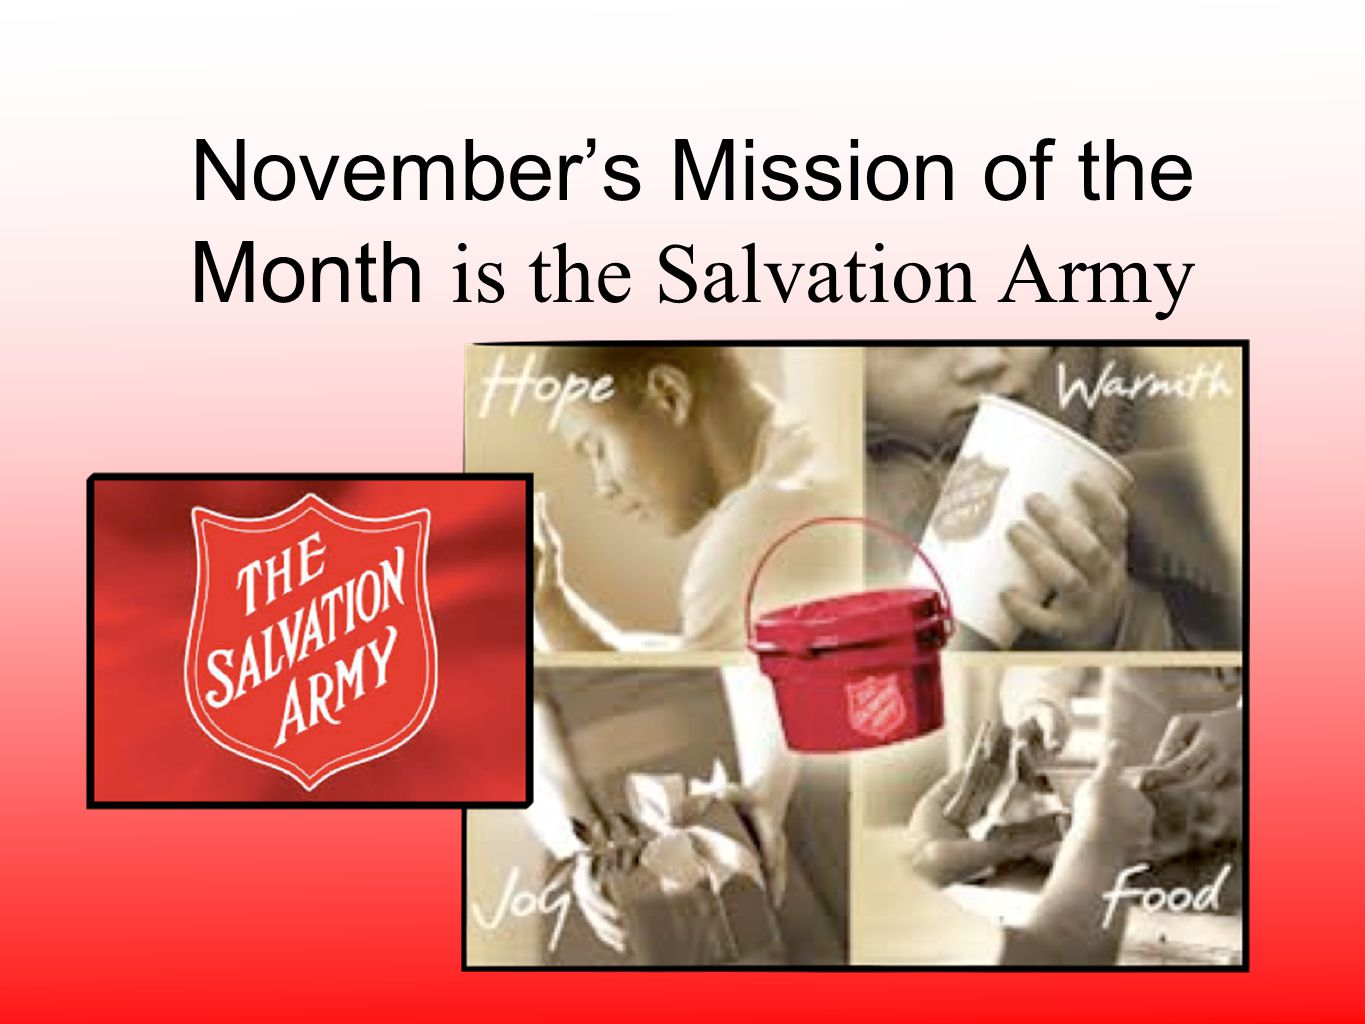 November's Mission of the Month is the Salvation Army